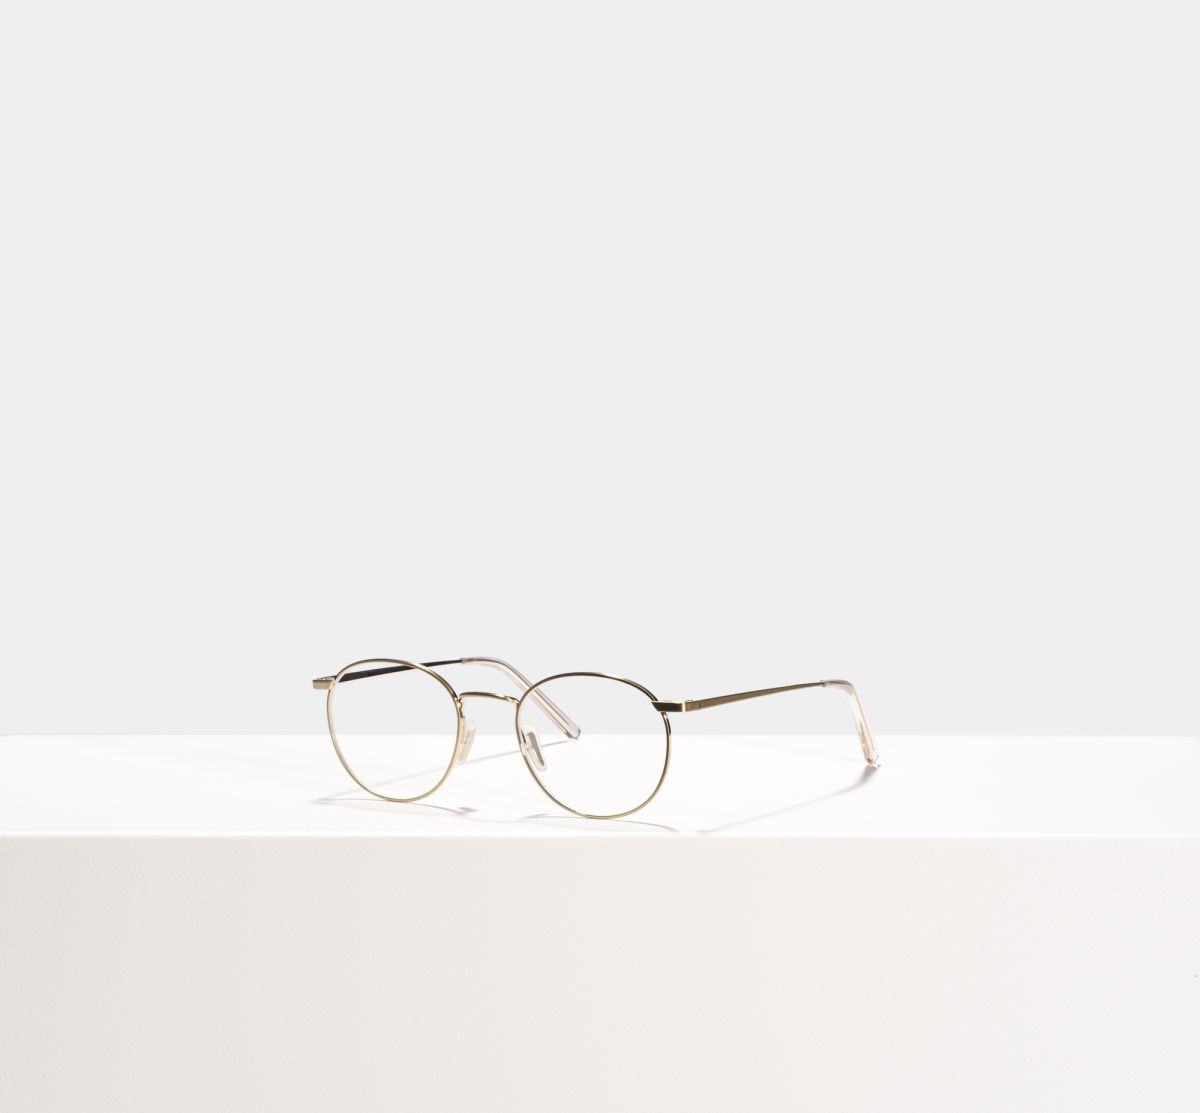 Neil rond metaal glasses in Satin Gold by Ace & Tate